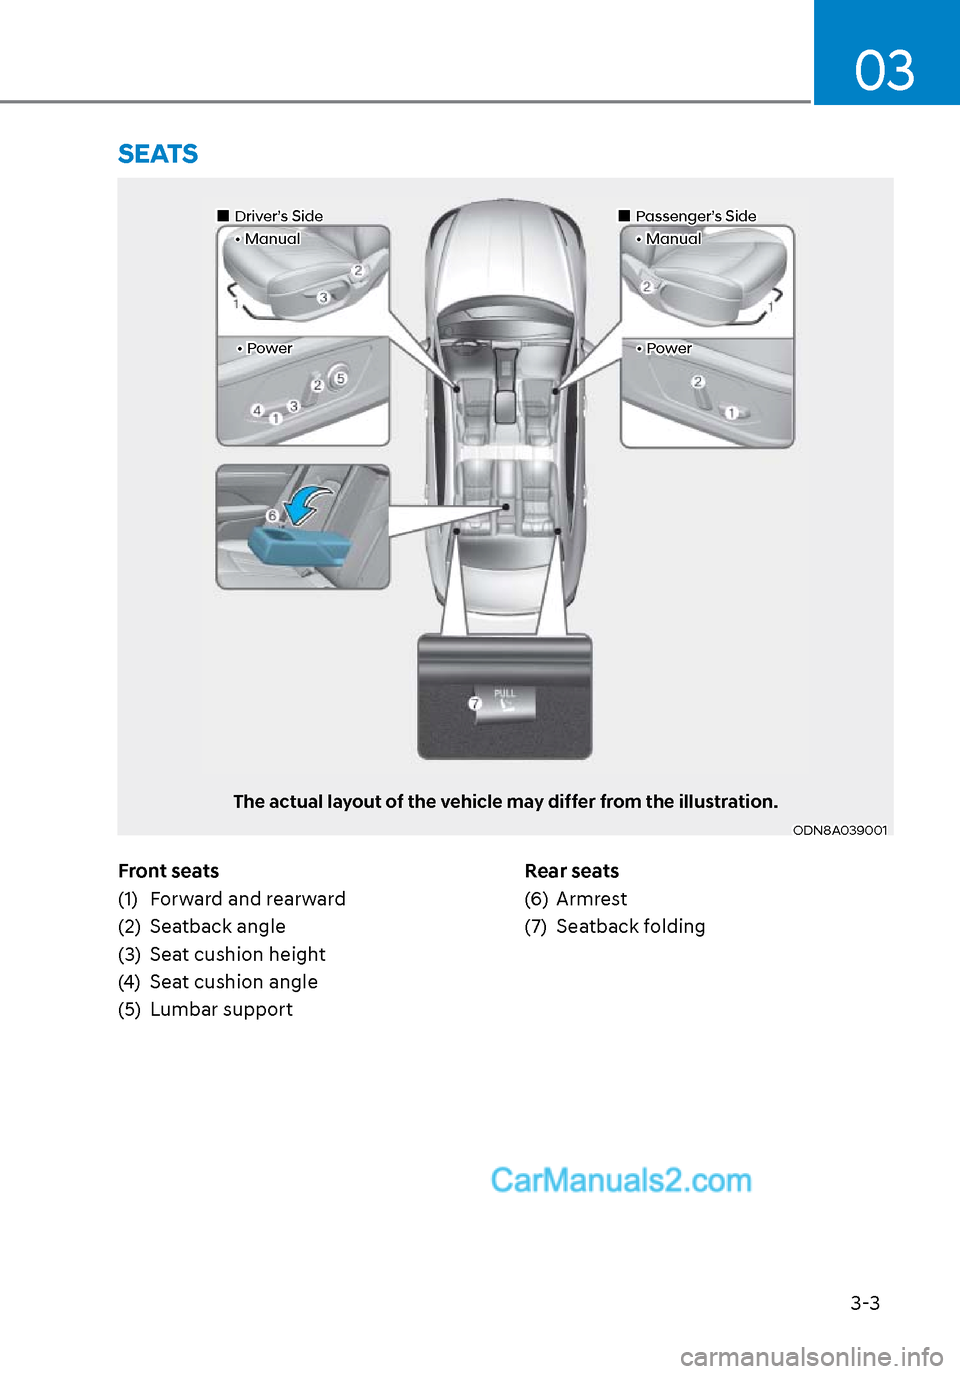 Hyundai Sonata 2020 Owners Guide 3-3 03 Front seats (1)  Forward and rearward (2) Seatback angle (3)  Seat cushion height (4)  Seat cushion angle (5) Lumbar supportRear seats (6) Armrest (7) Seatback folding  SEATS ODN8A039001ODN8A03